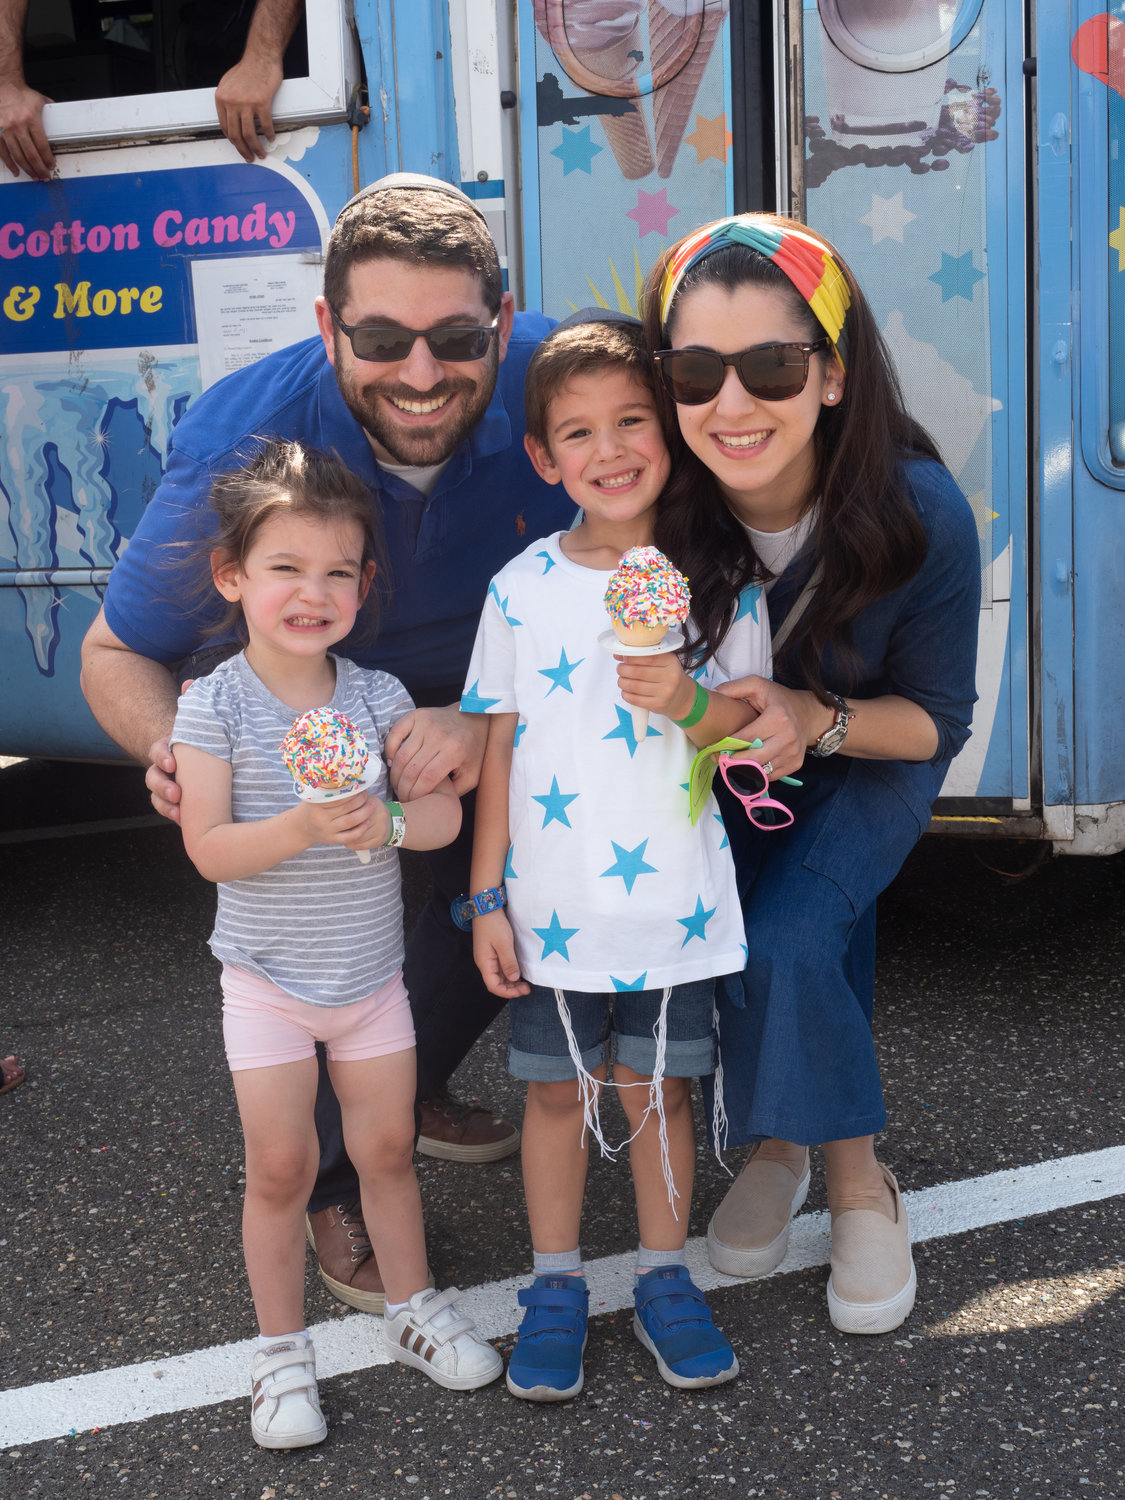 Ice cream was the treat for Zahava, 2, and Meir, 4, Weinstein with parents Yaakov and Davora at the fall festival.